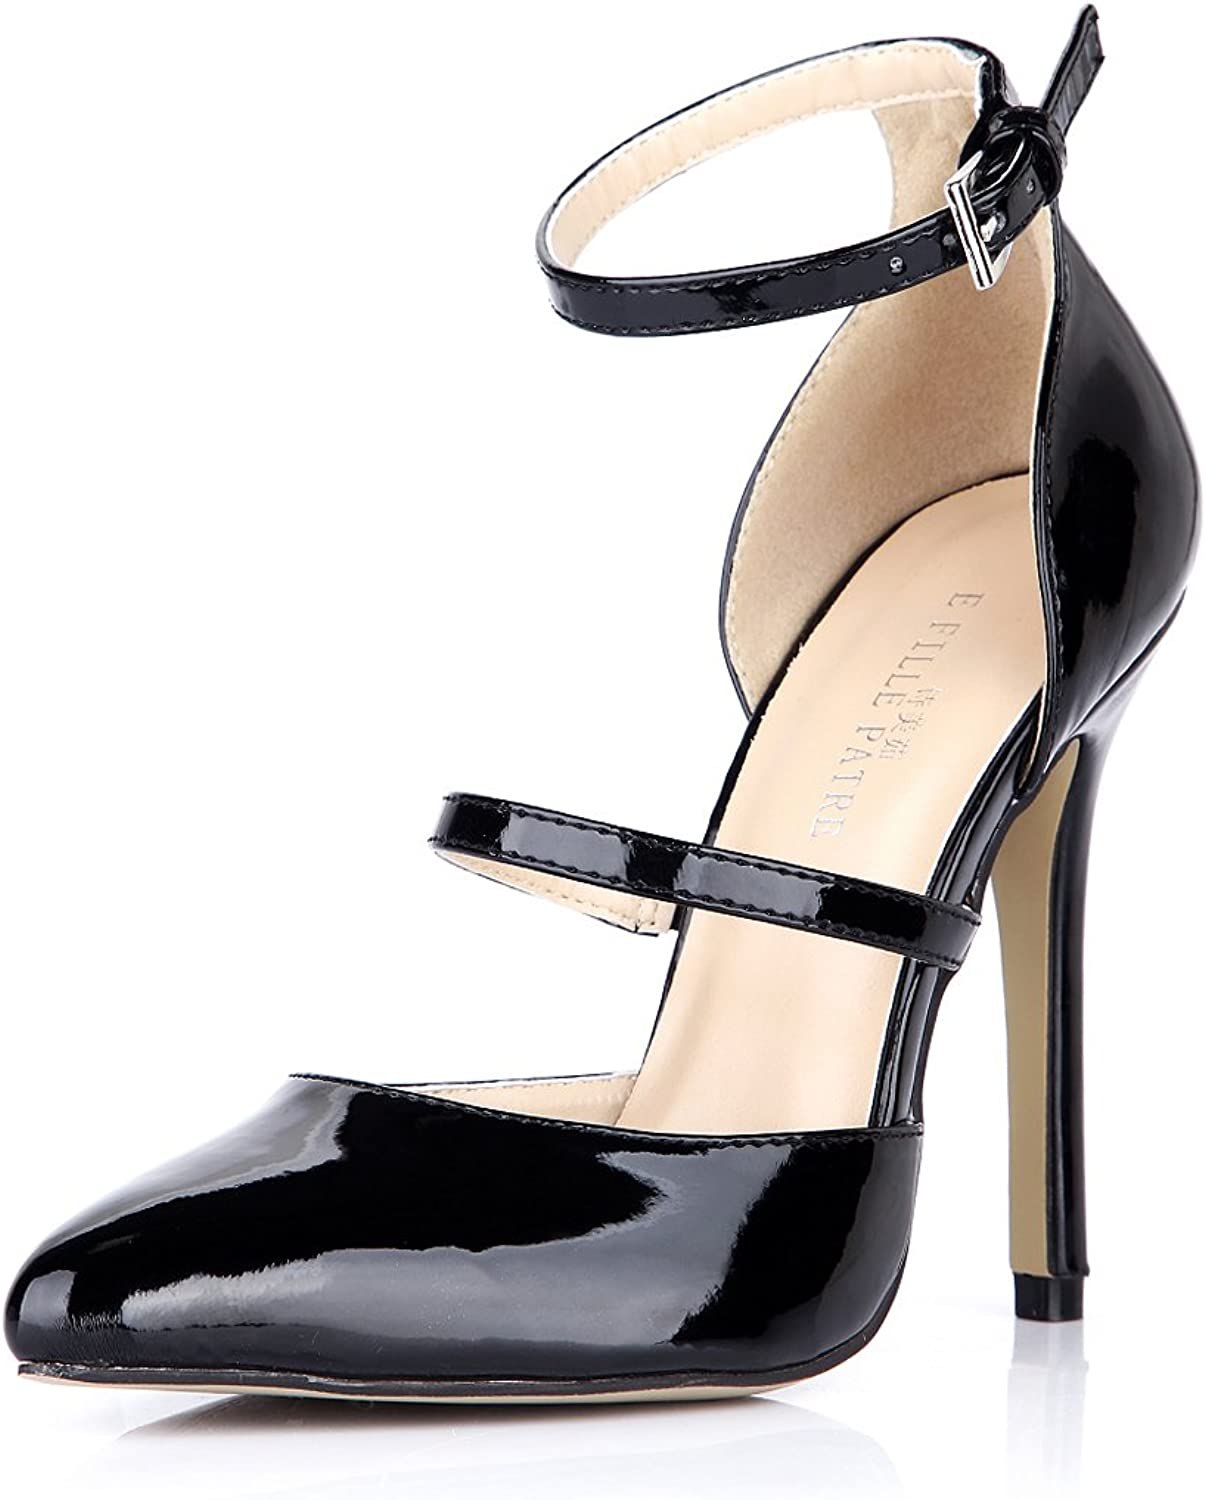 DolphinGirl Women Fashion Pointy Toe High Heels with Ankle Strap Dress Pumps Stiletto shoes SM00096